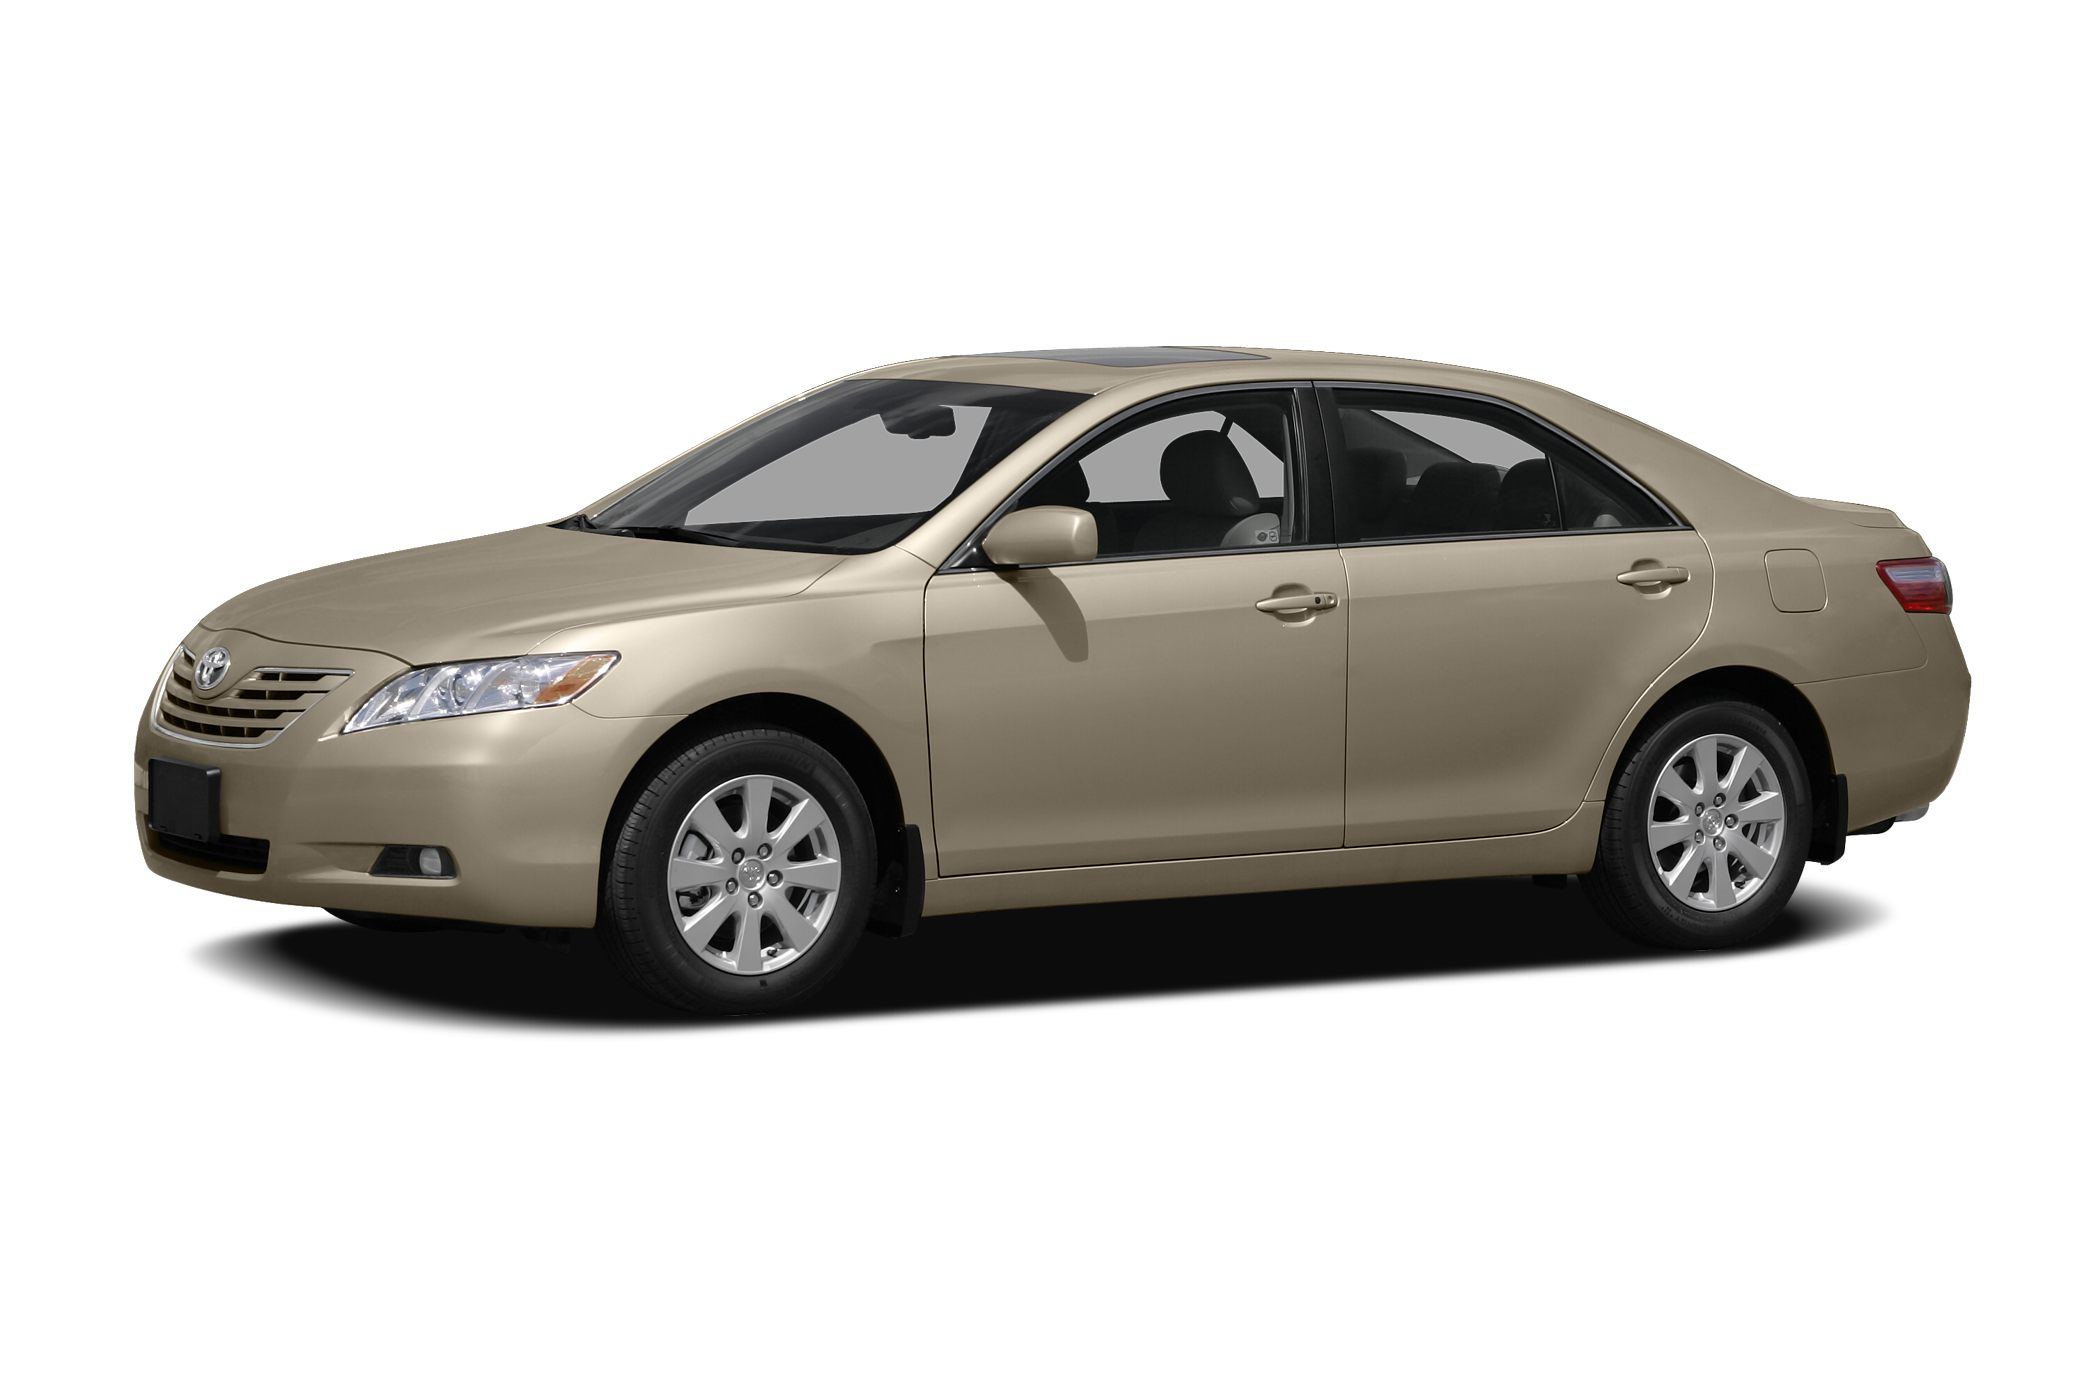 2009 Toyota Camry LE Sedan for sale in Cincinnati for $8,995 with 152,845 miles.